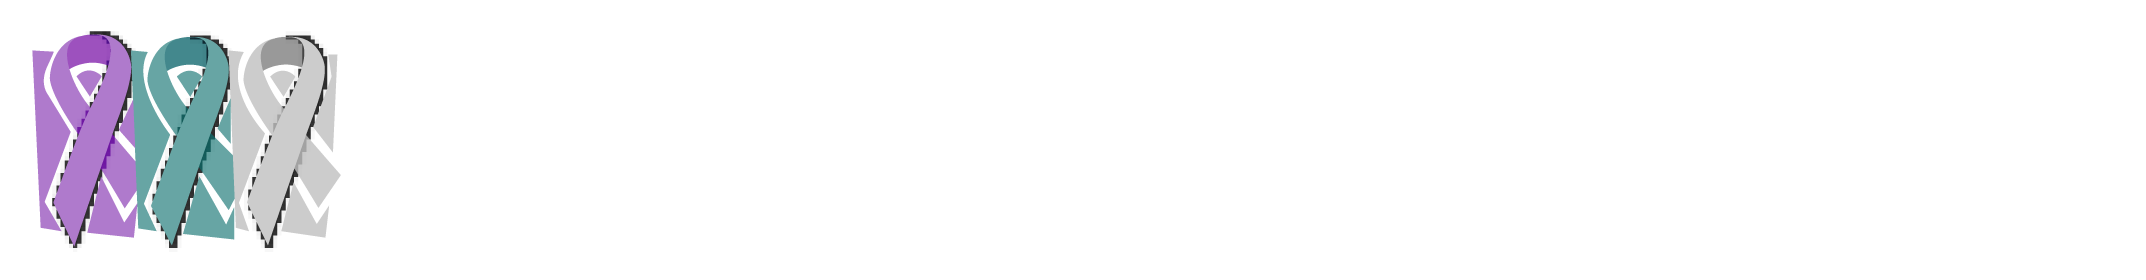 30th Judicial District Alliance